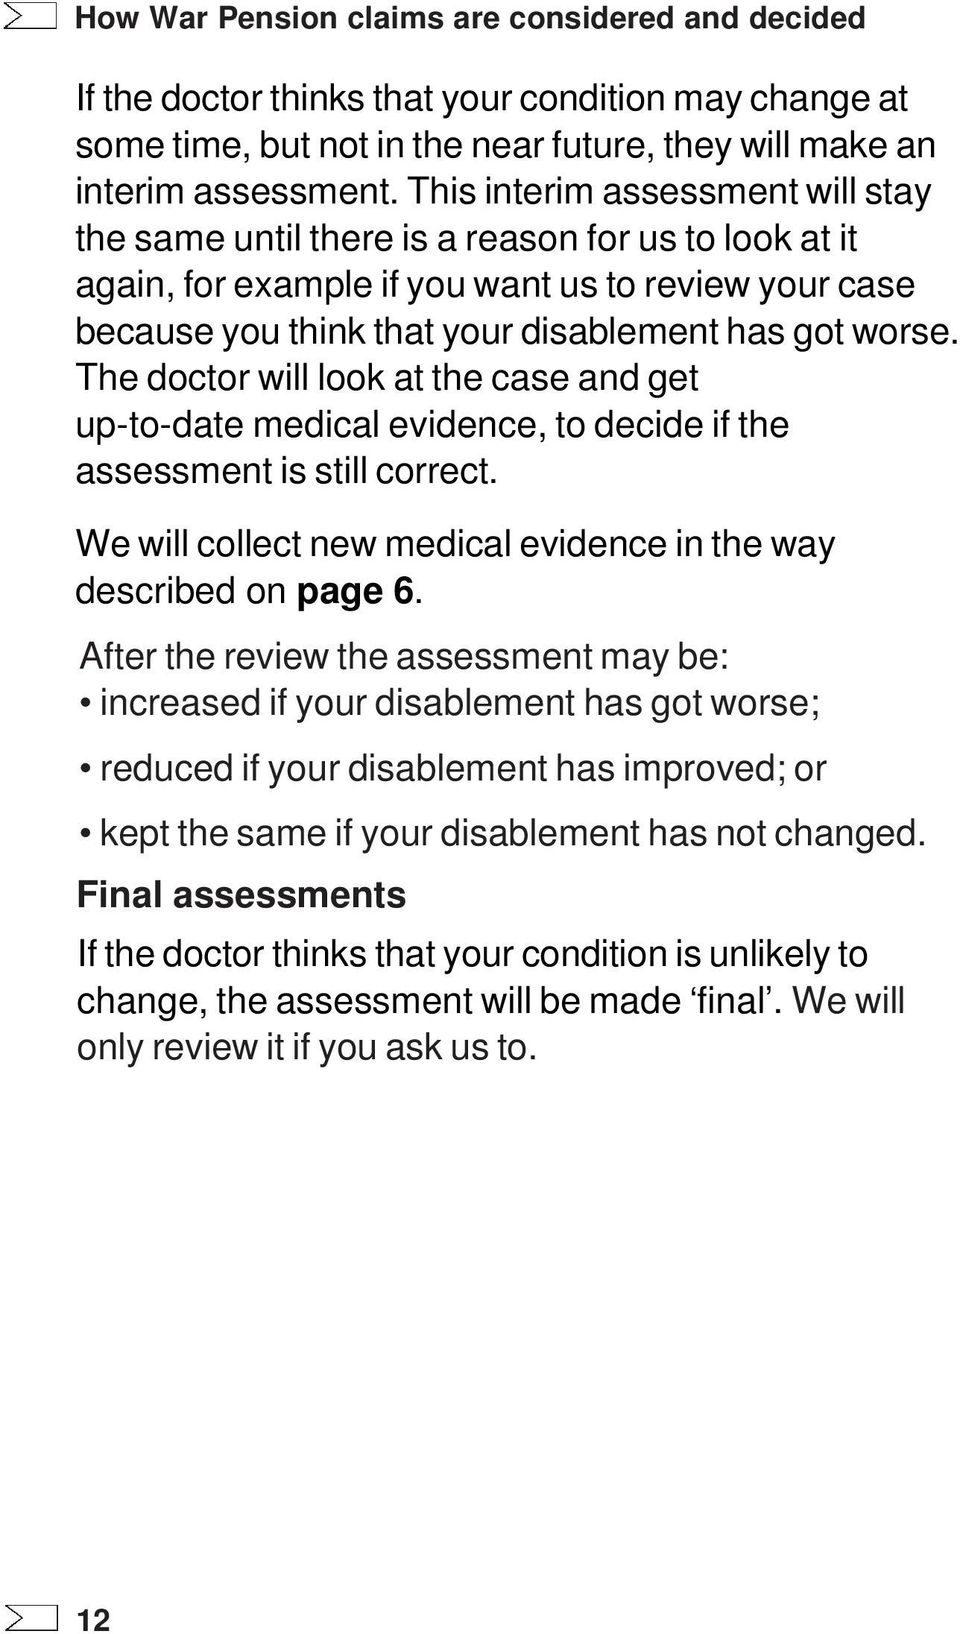 The doctor will look at the case and get up-to-date medical evidence, to decide if the assessment is still correct. We will collect new medical evidence in the way described on page 6.